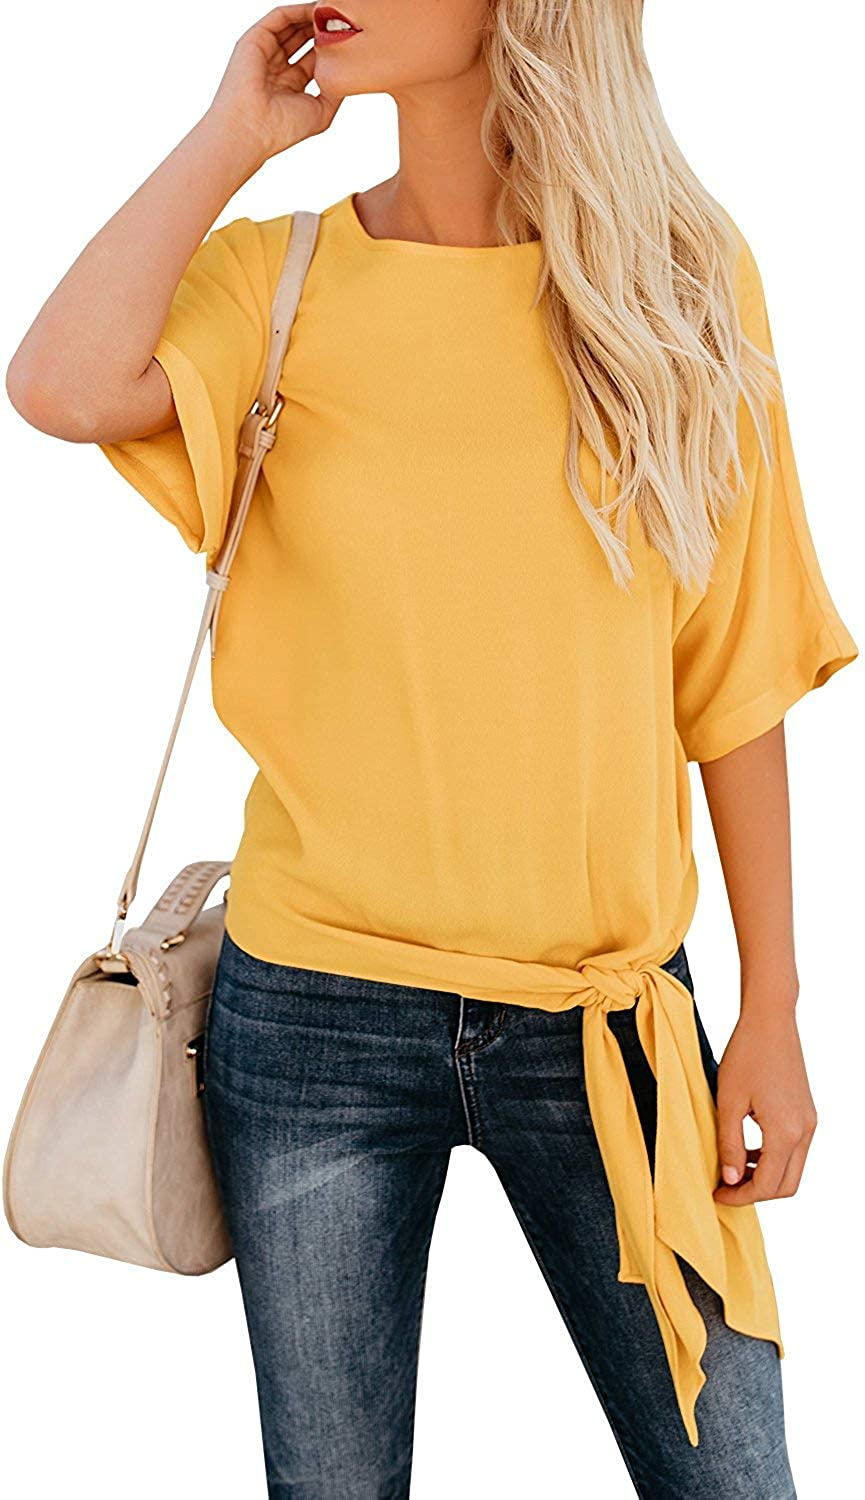 OURS Women's Casual Knot Tie Front Half Sleeve Summer T Shirt Blouses Tops